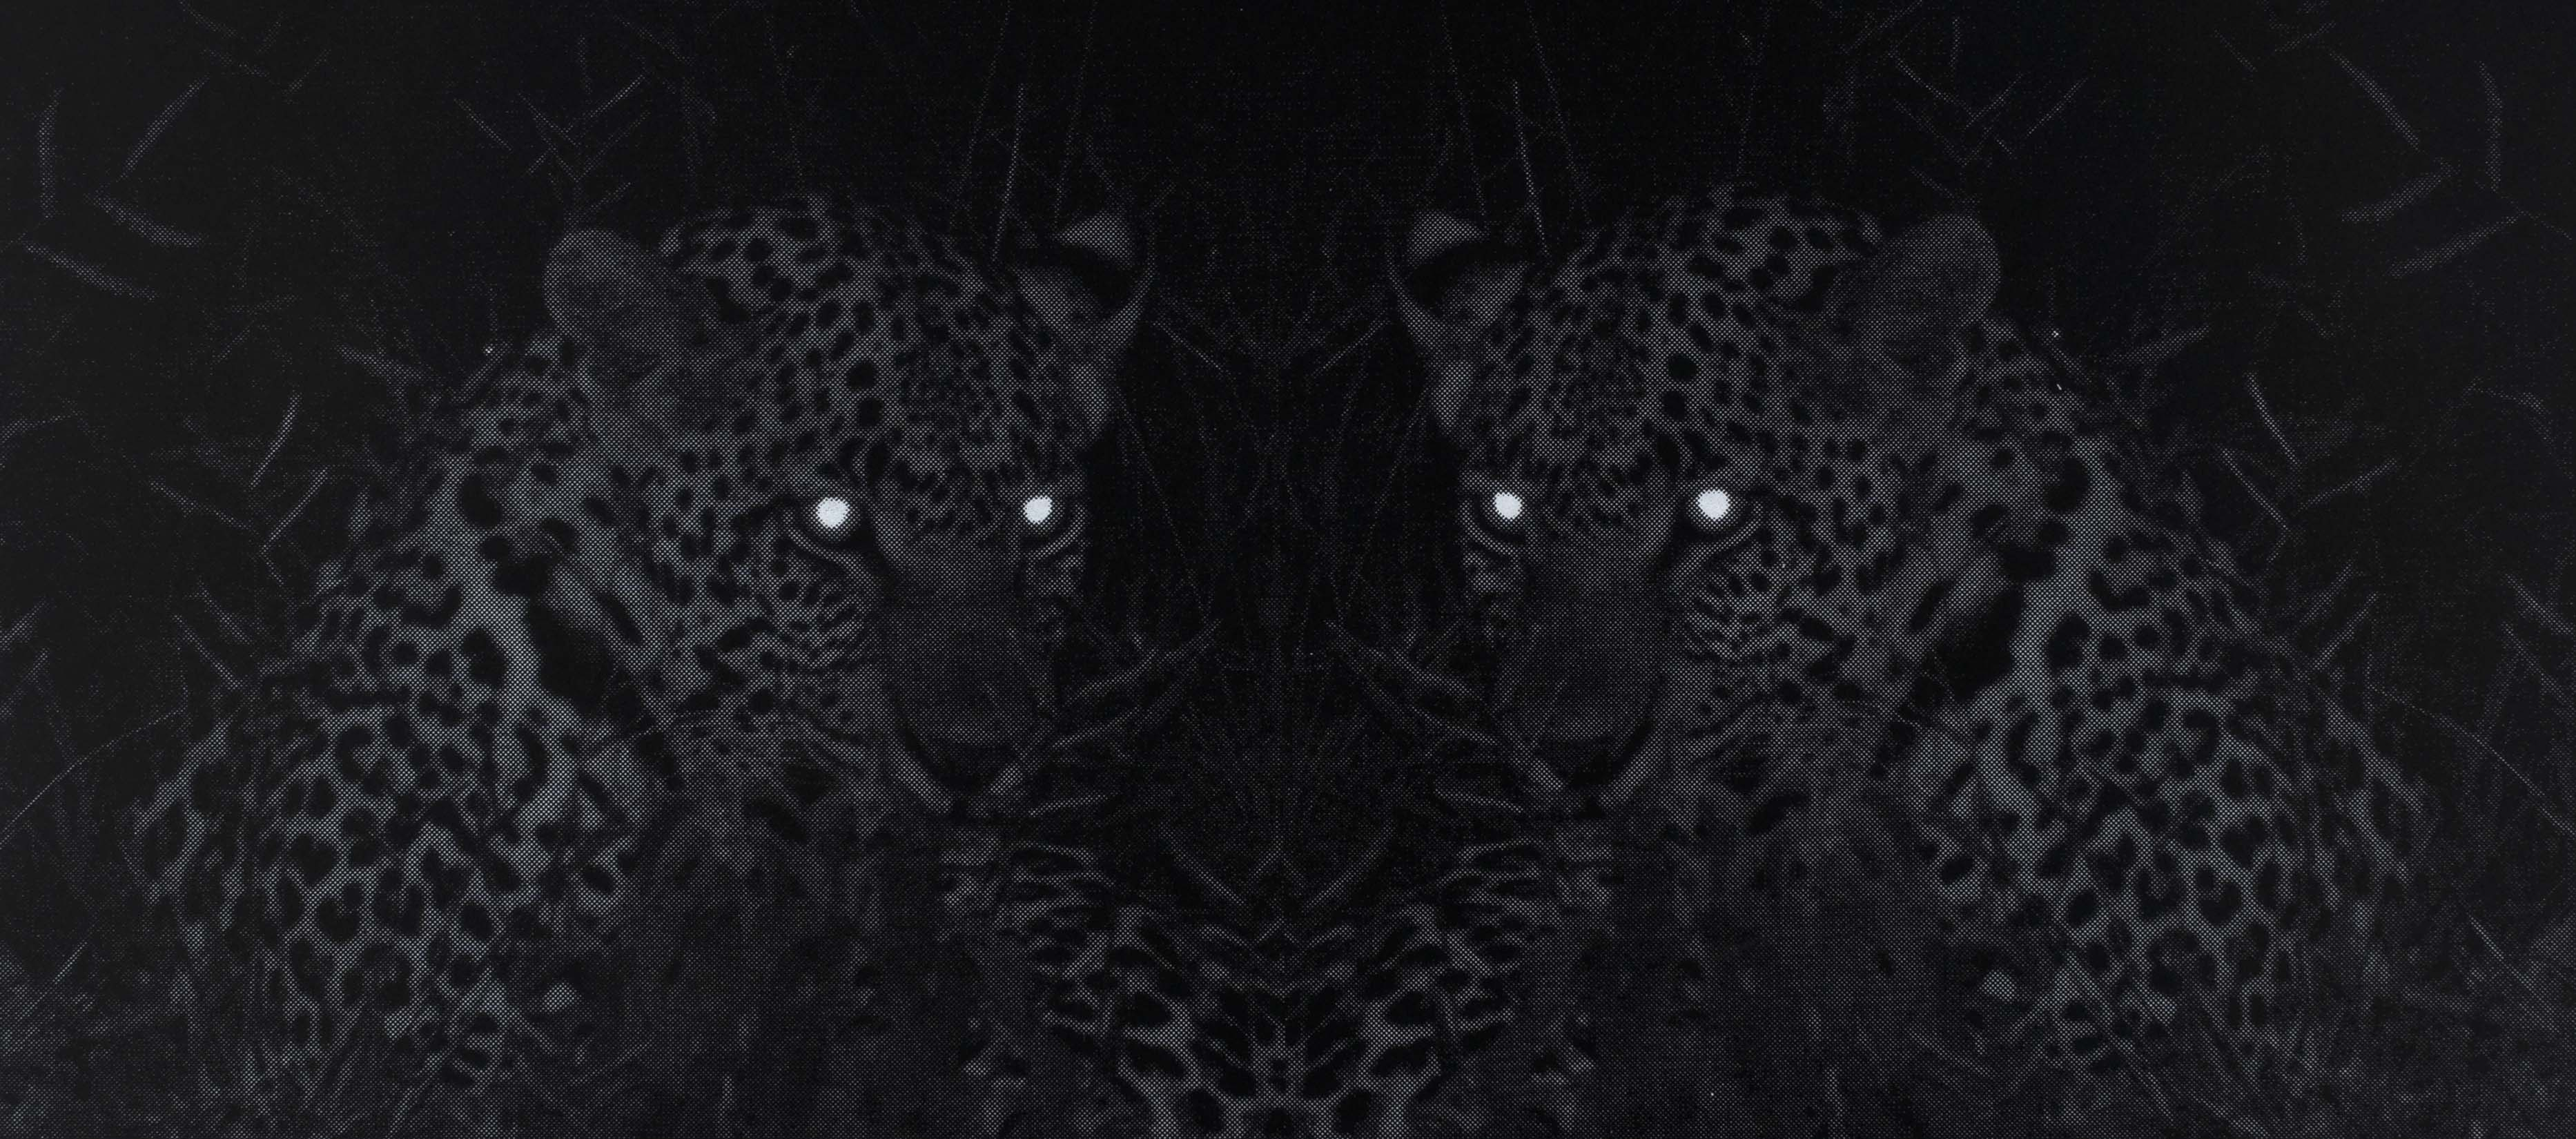 Eve-Biddle-Artworks-Big-Cats-Leopard-Africa-2018